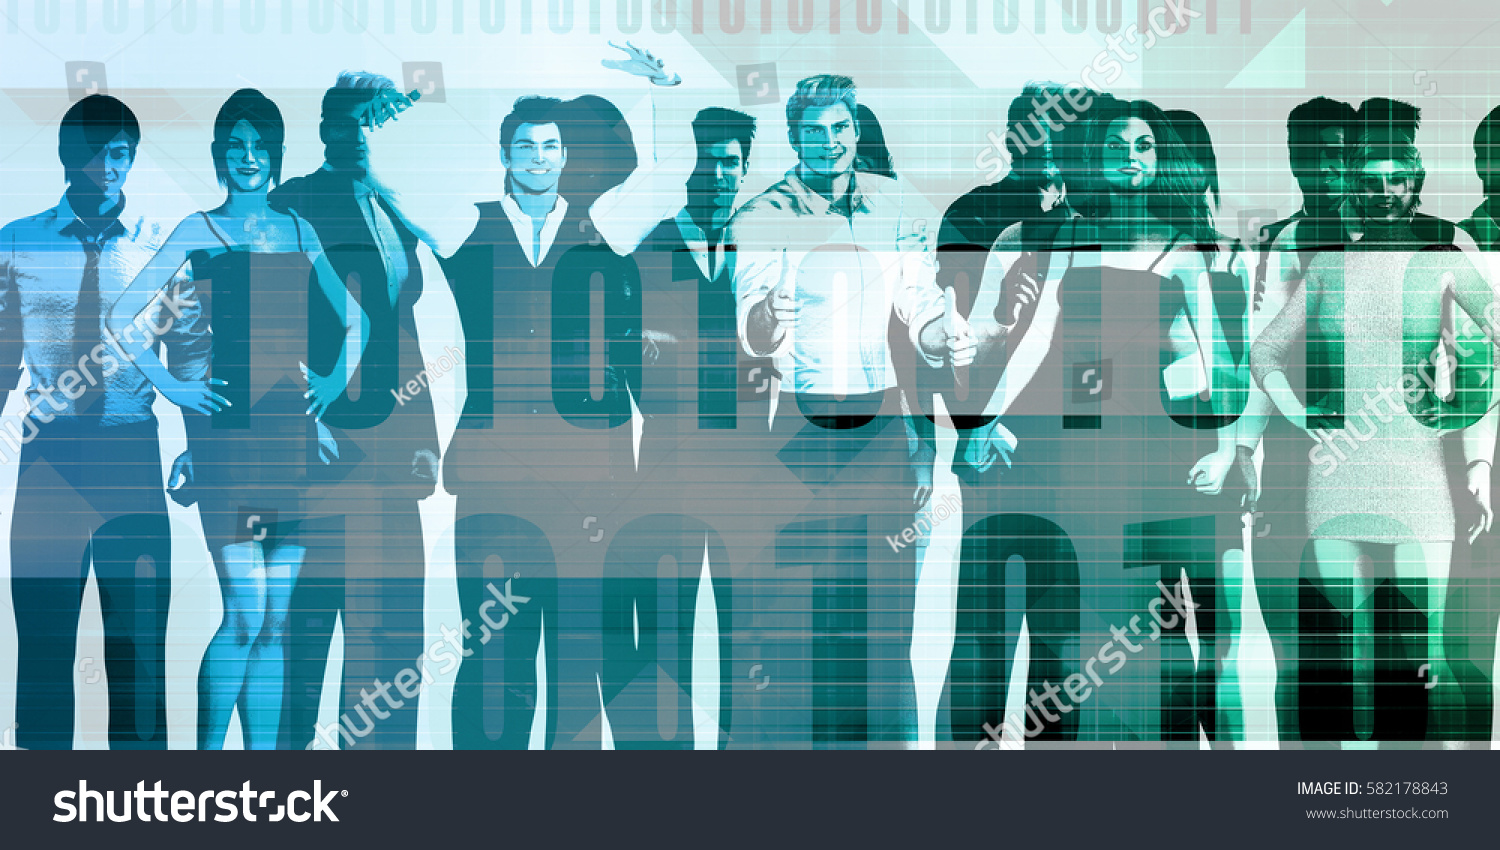 Business People Group Standing Together Unity Stock Illustration